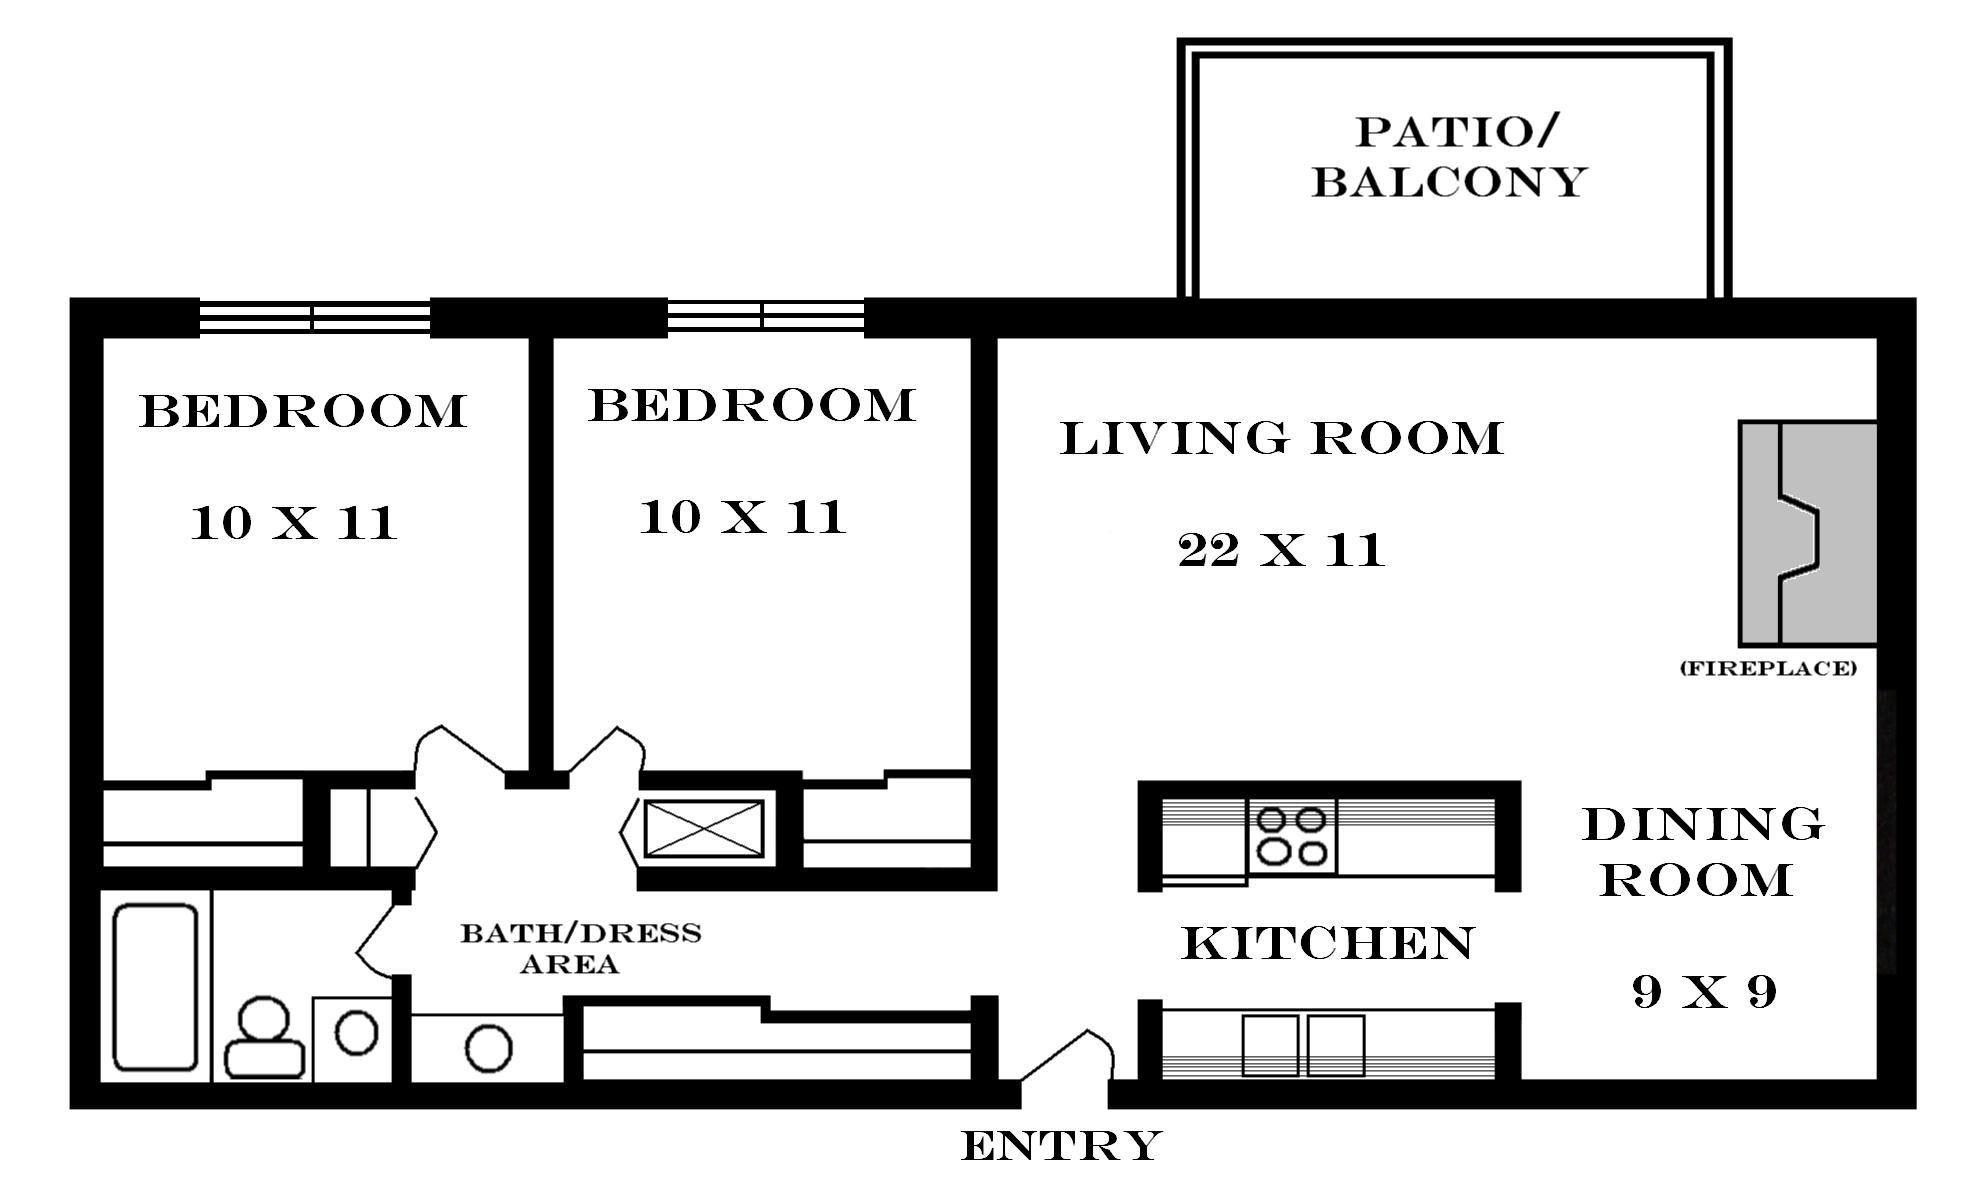 Small house floor plans 2 bedrooms 900 tiny houses for Two bedroom home floor plans